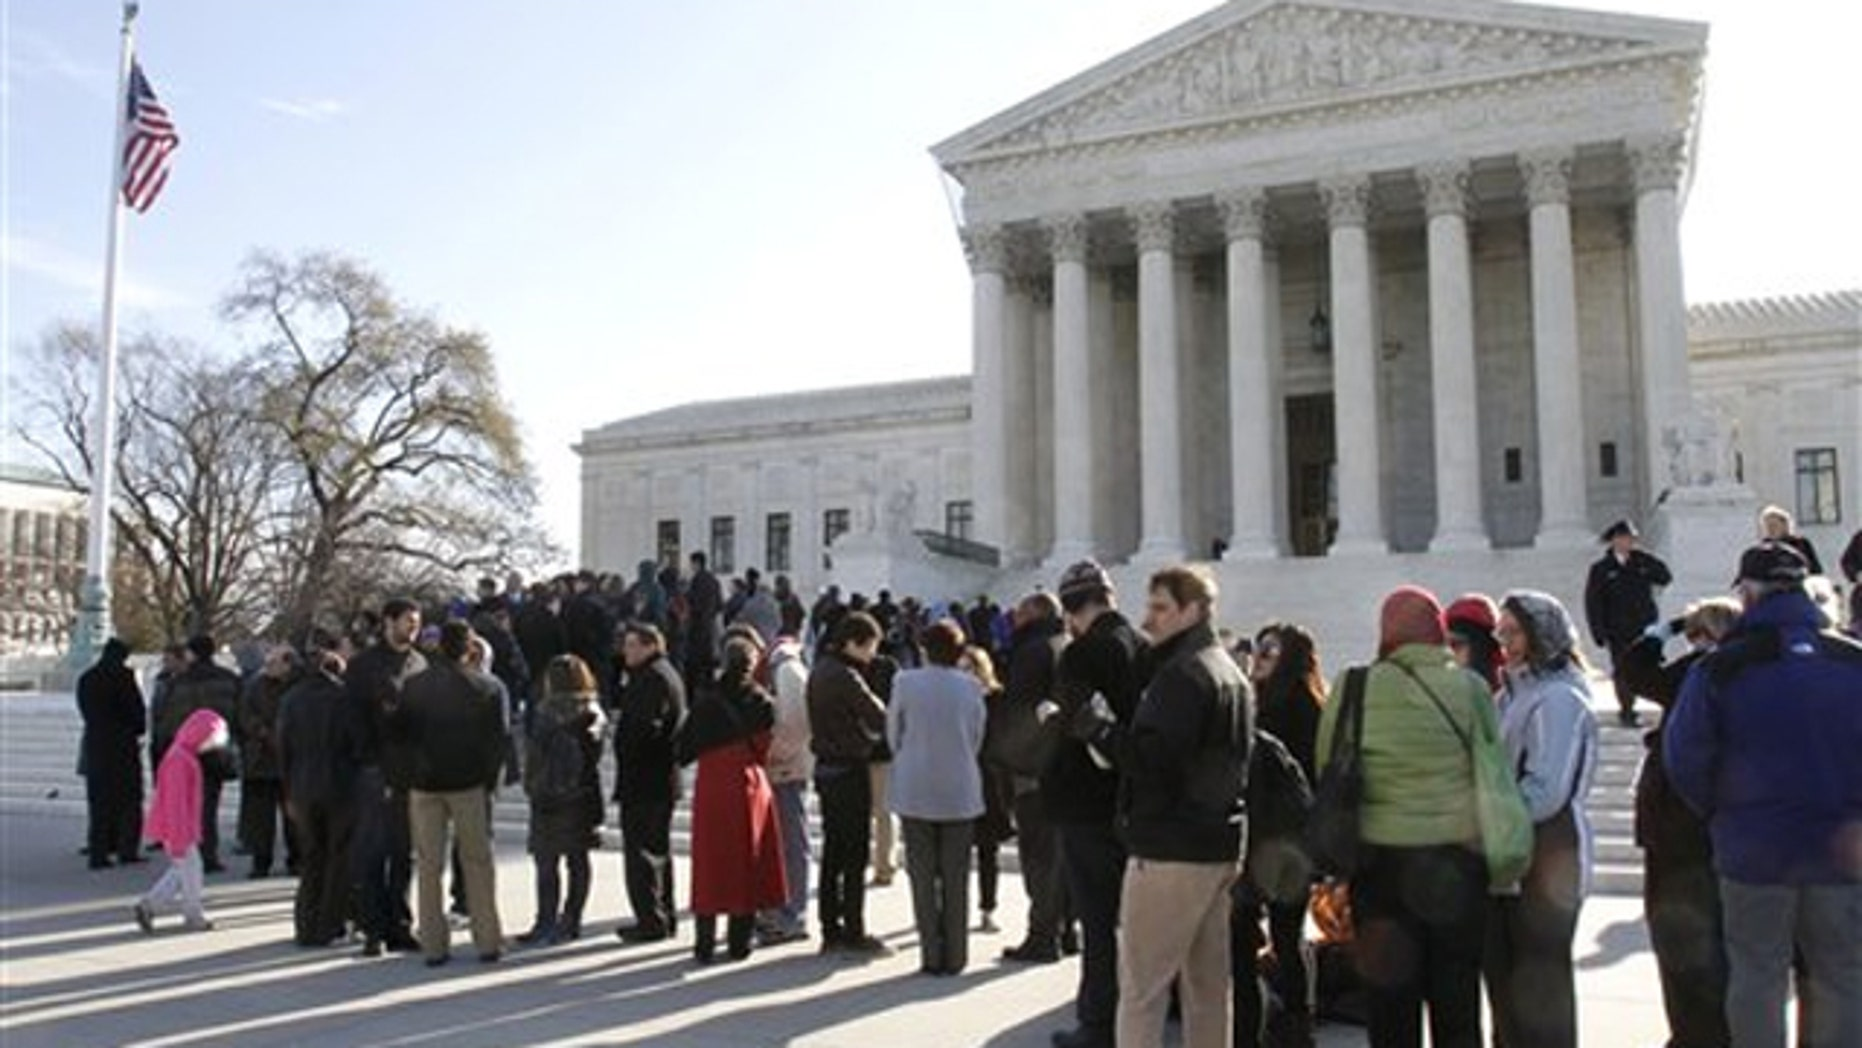 People line up outside the Supreme Court in Washington March 29 to attend a hearing on women employees against Wal-Mart.